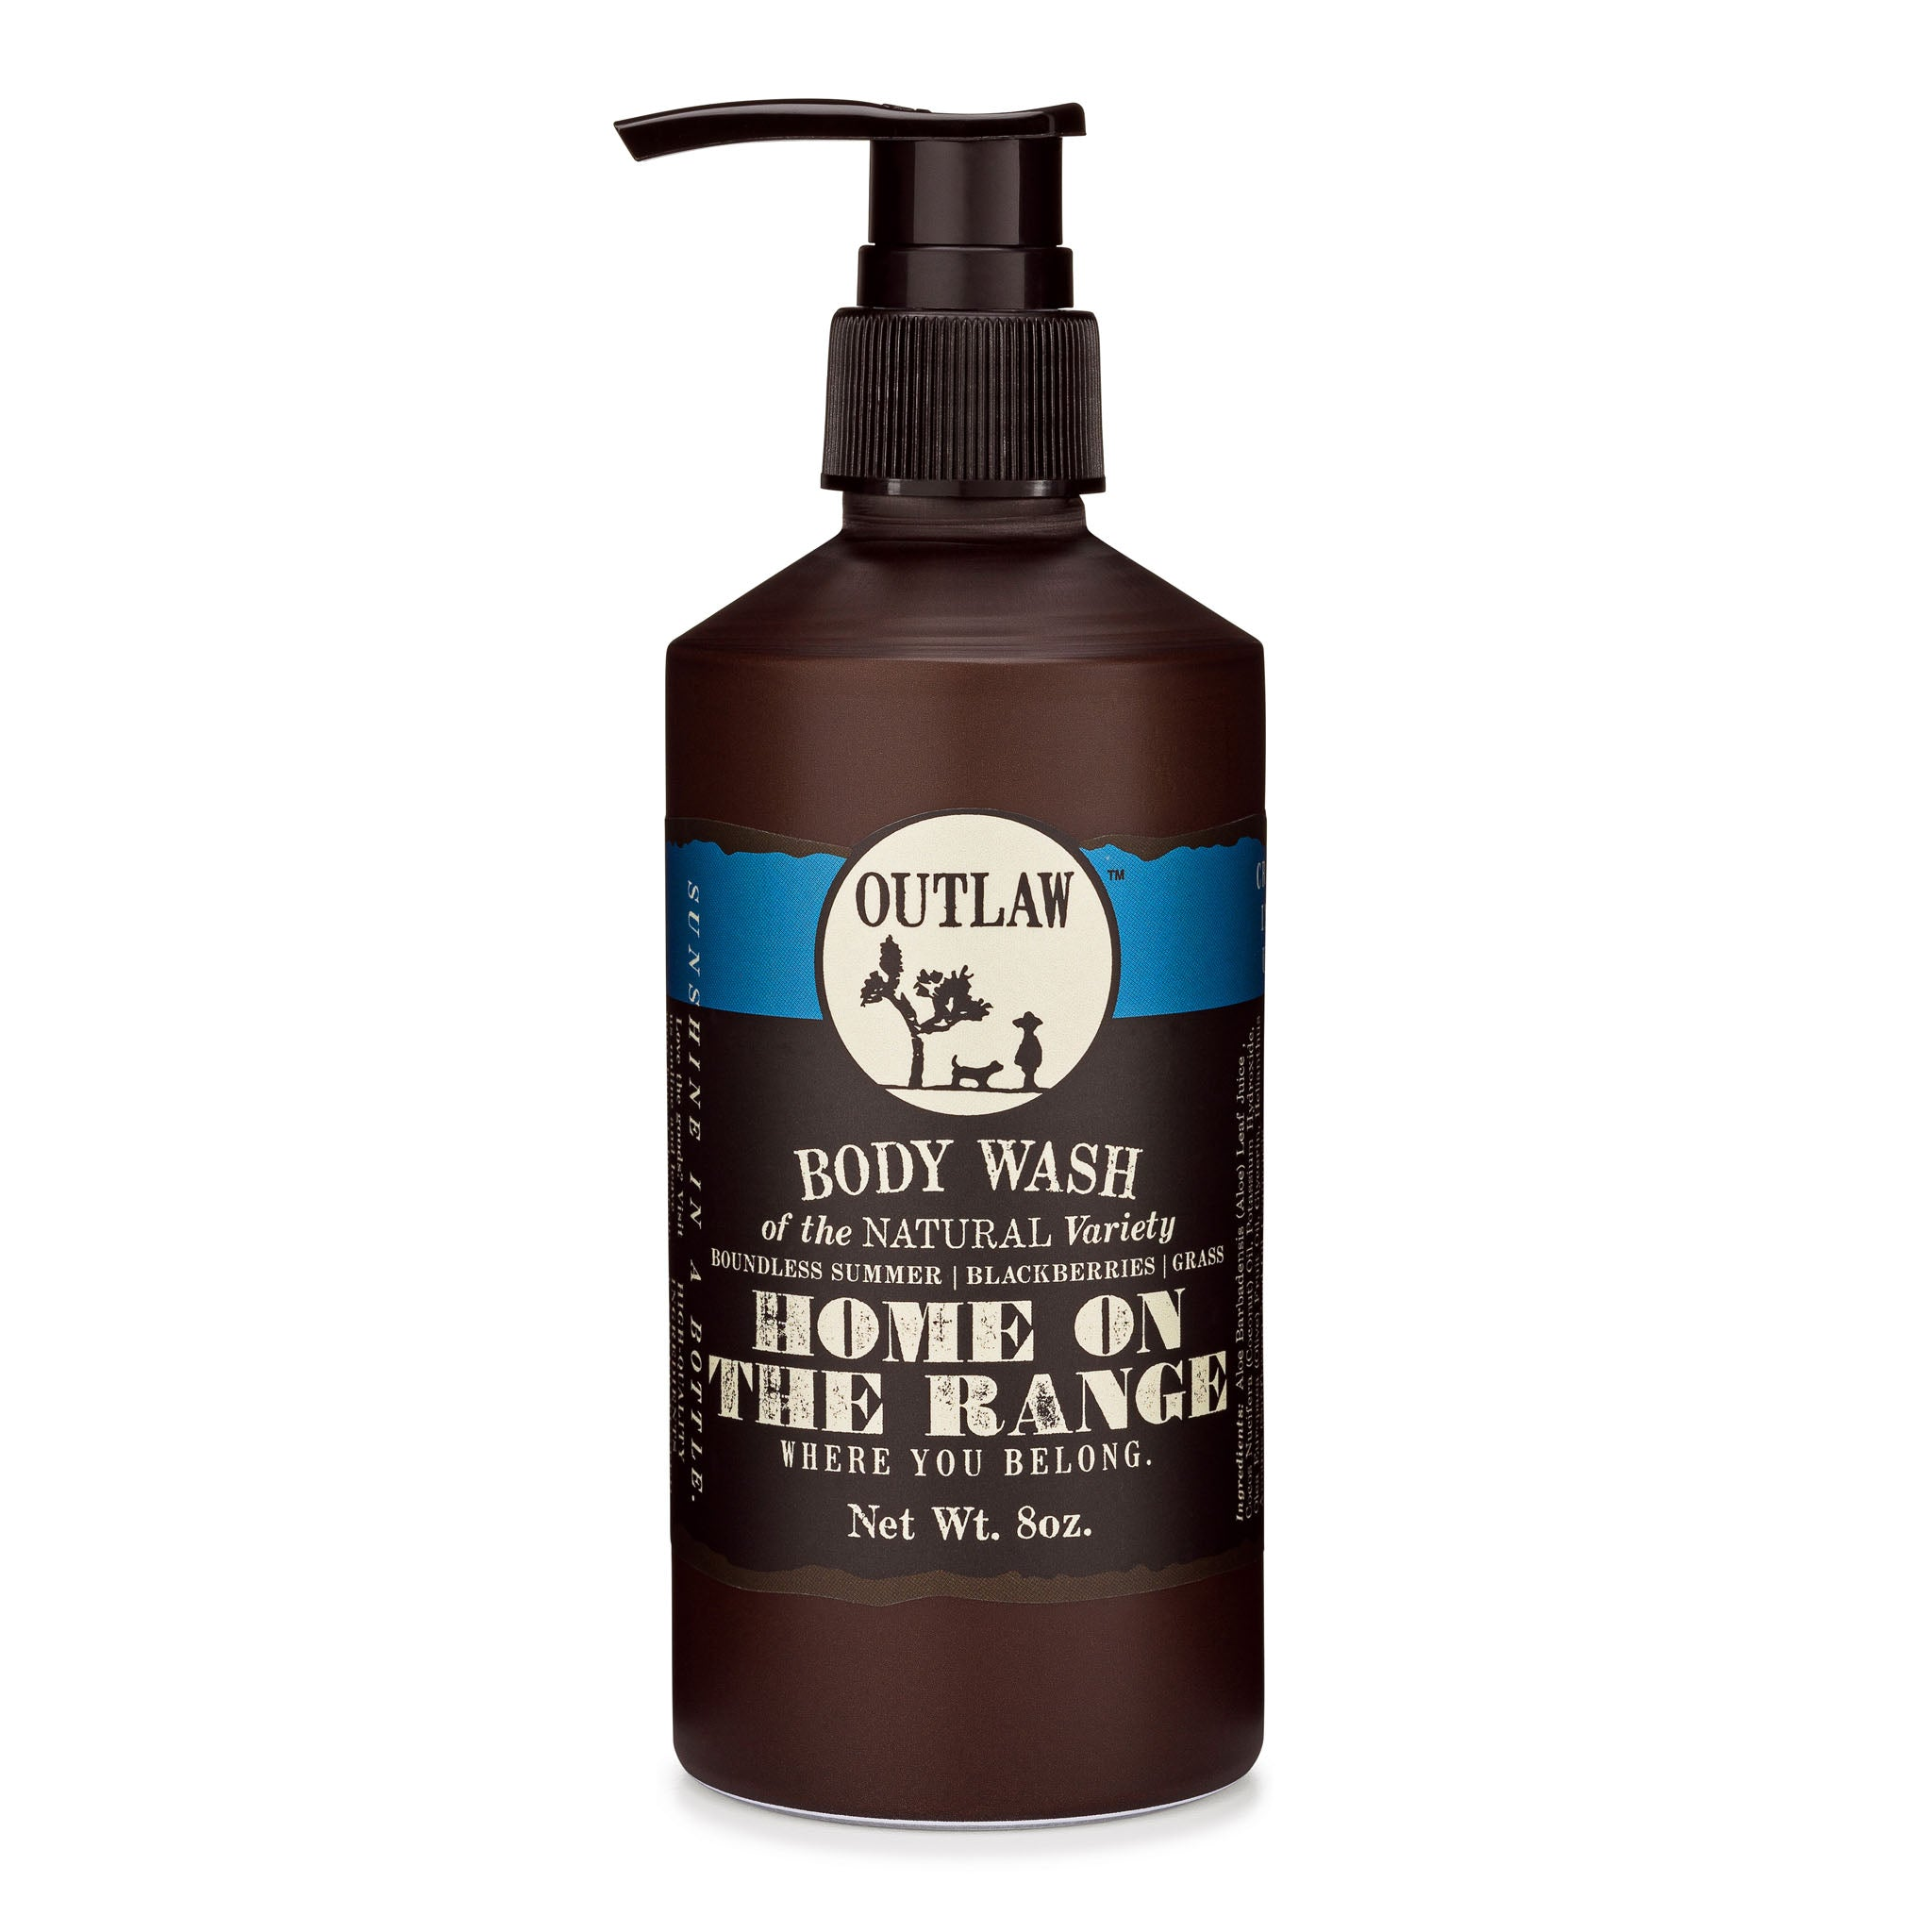 Home on the Range Body Wash